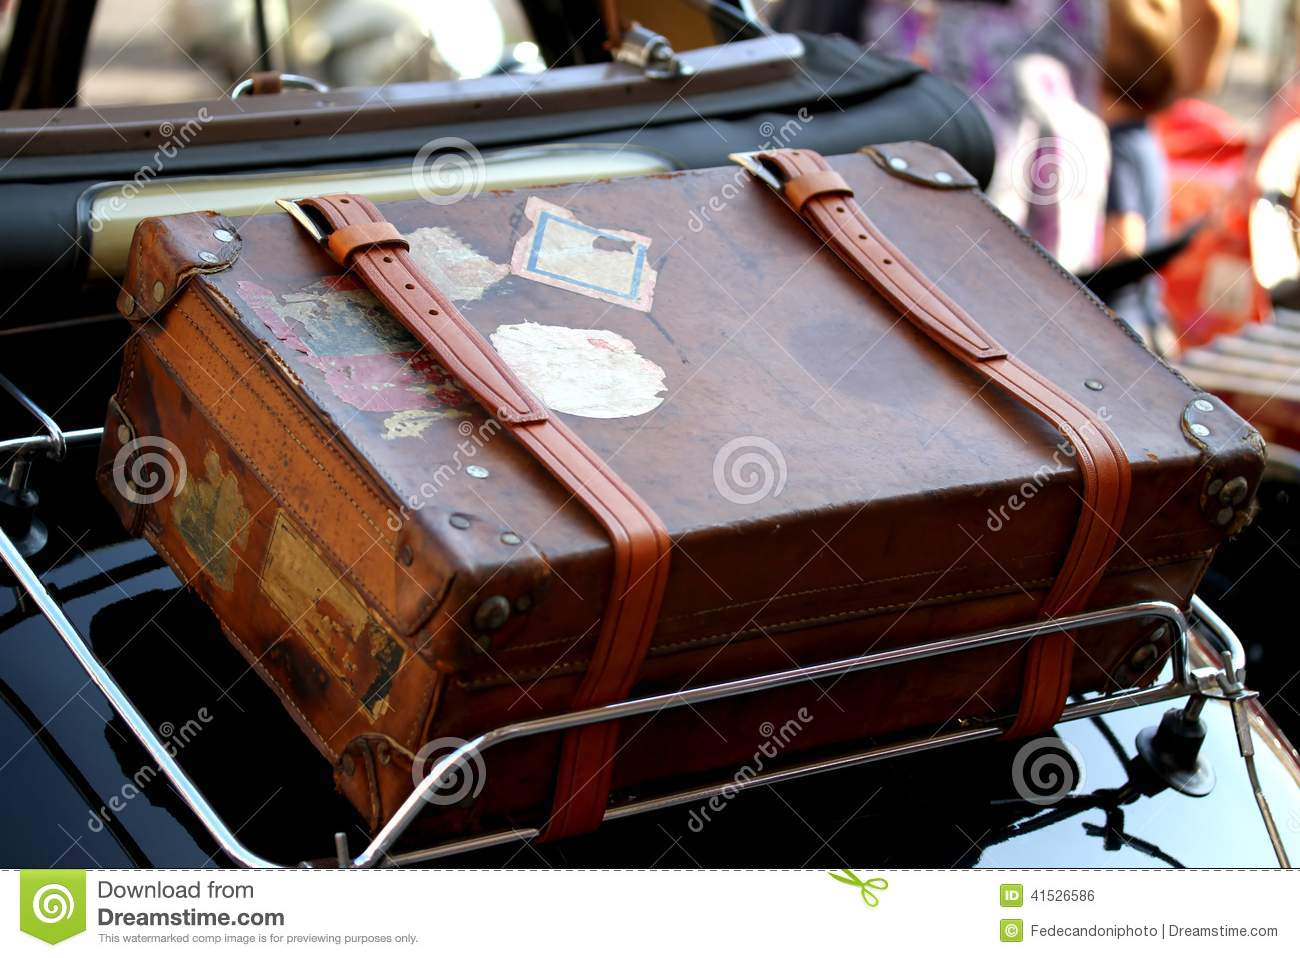 Suitcase Luggage Rack Vintage Car Stock Photos, Images, & Pictures ...